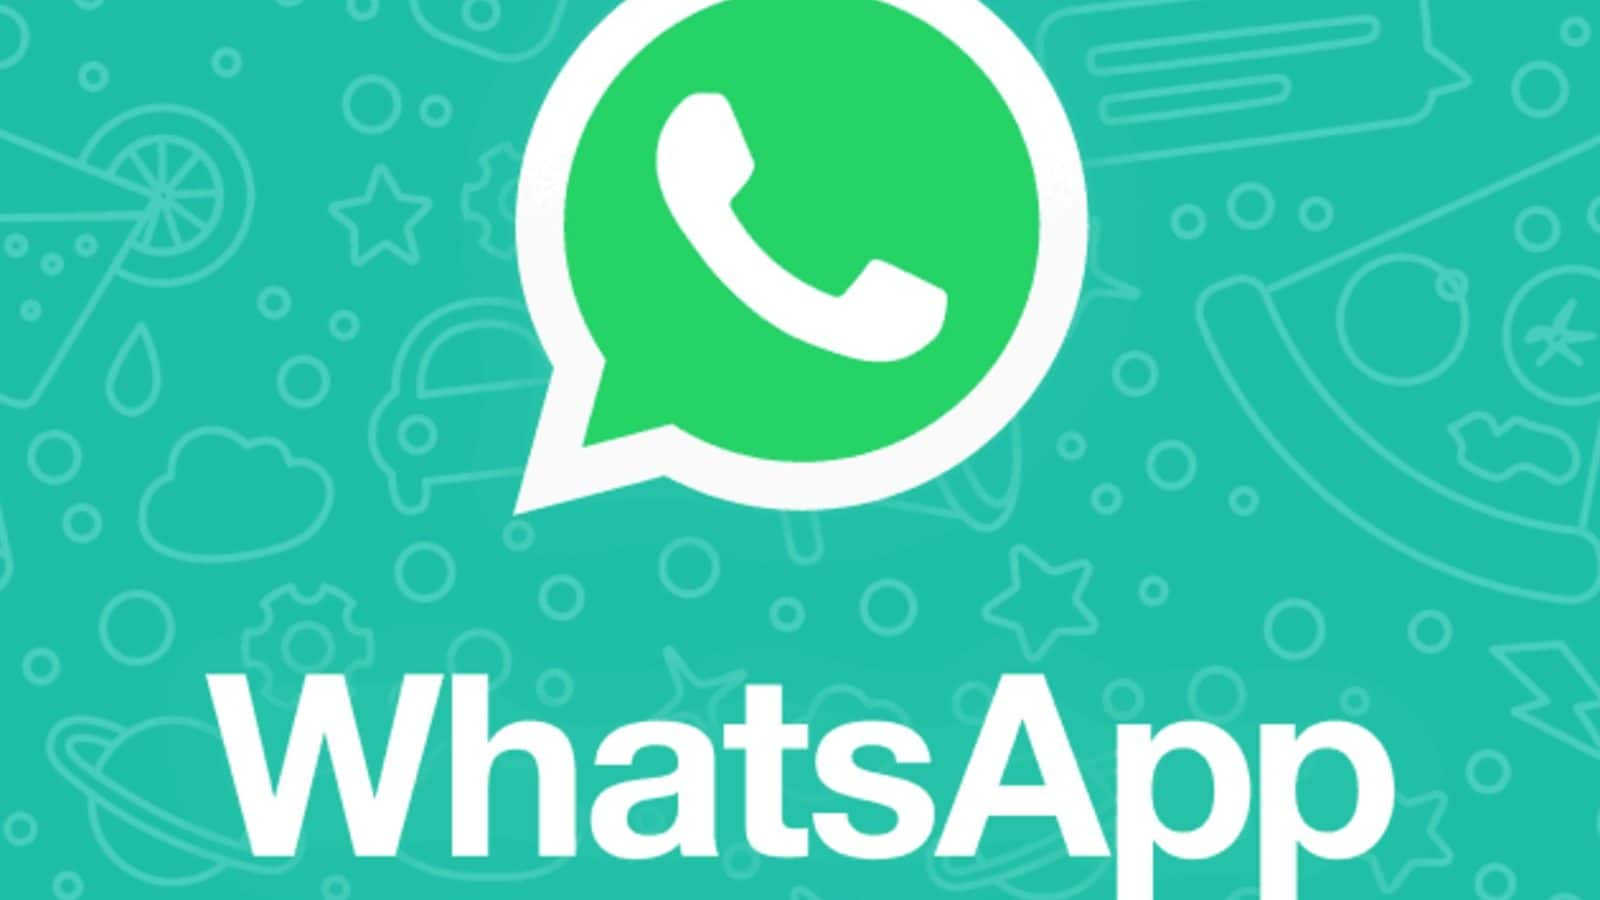 WhatsApp Emoji Reactions Coming Soon? Code Hints At Notification Setting For Messages